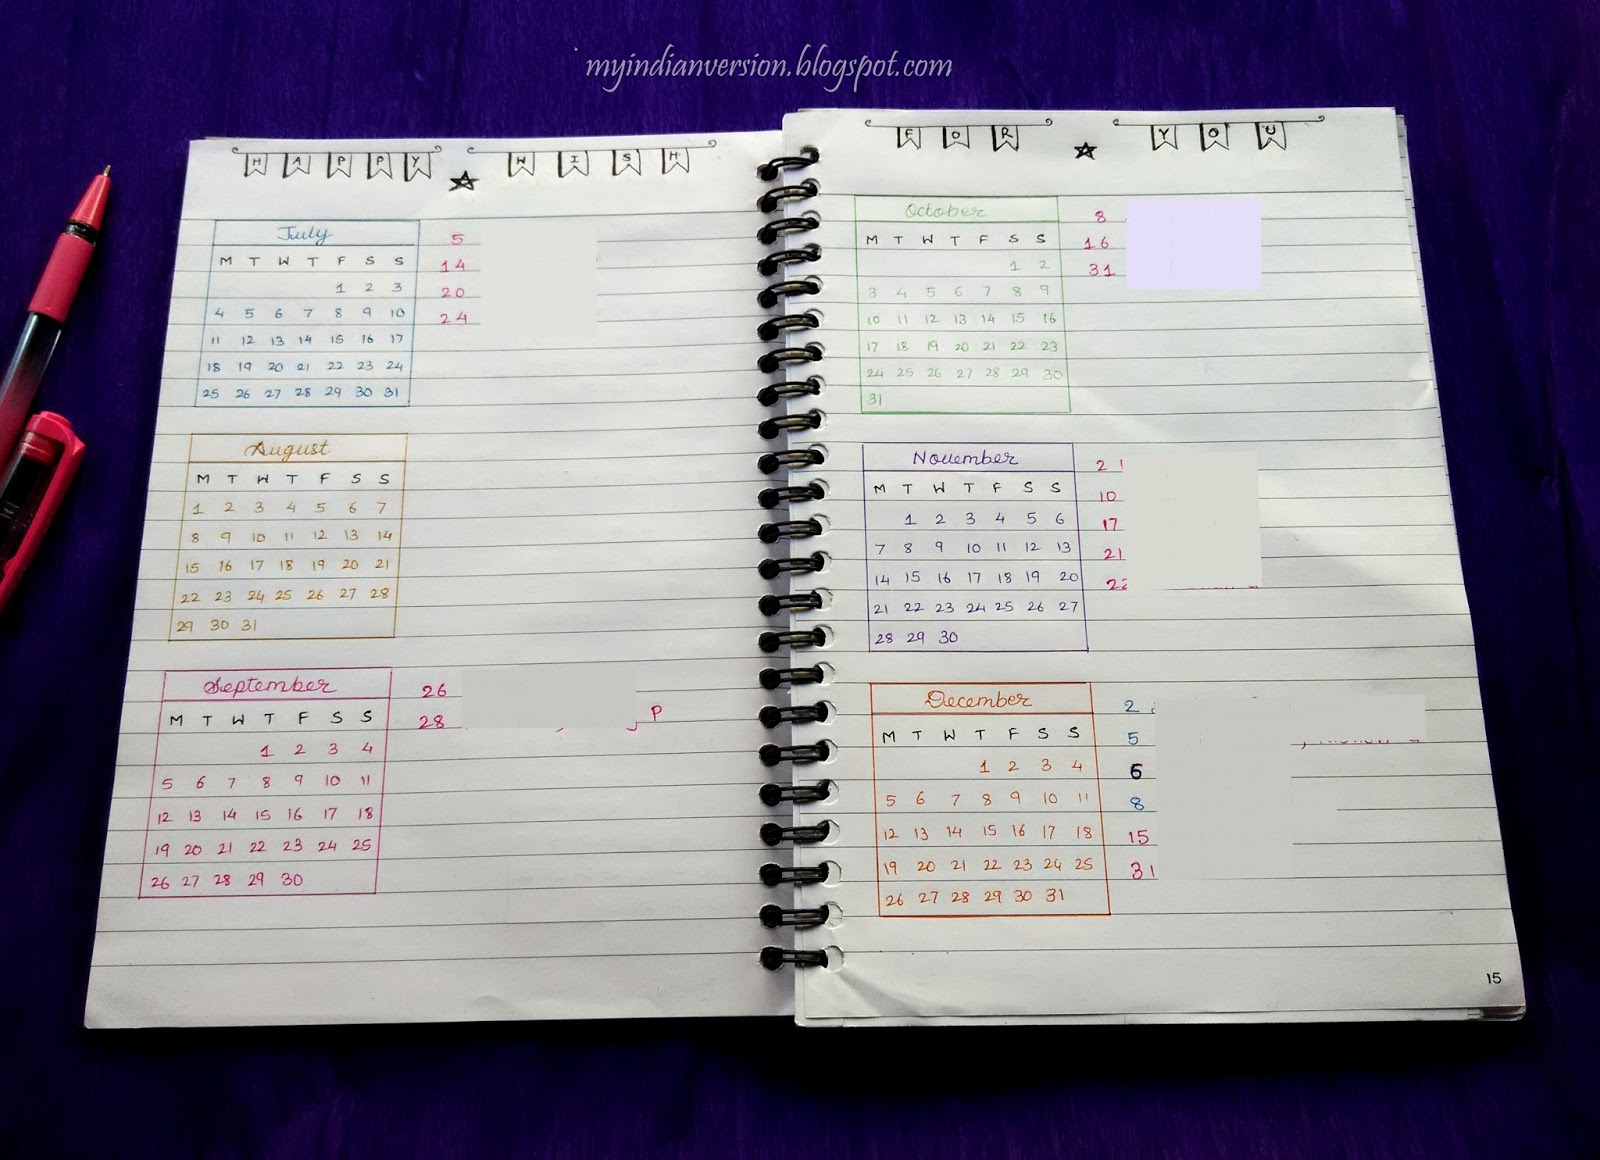 Calendar Bullet Journal : My indian version bullet journal yearly calendar and